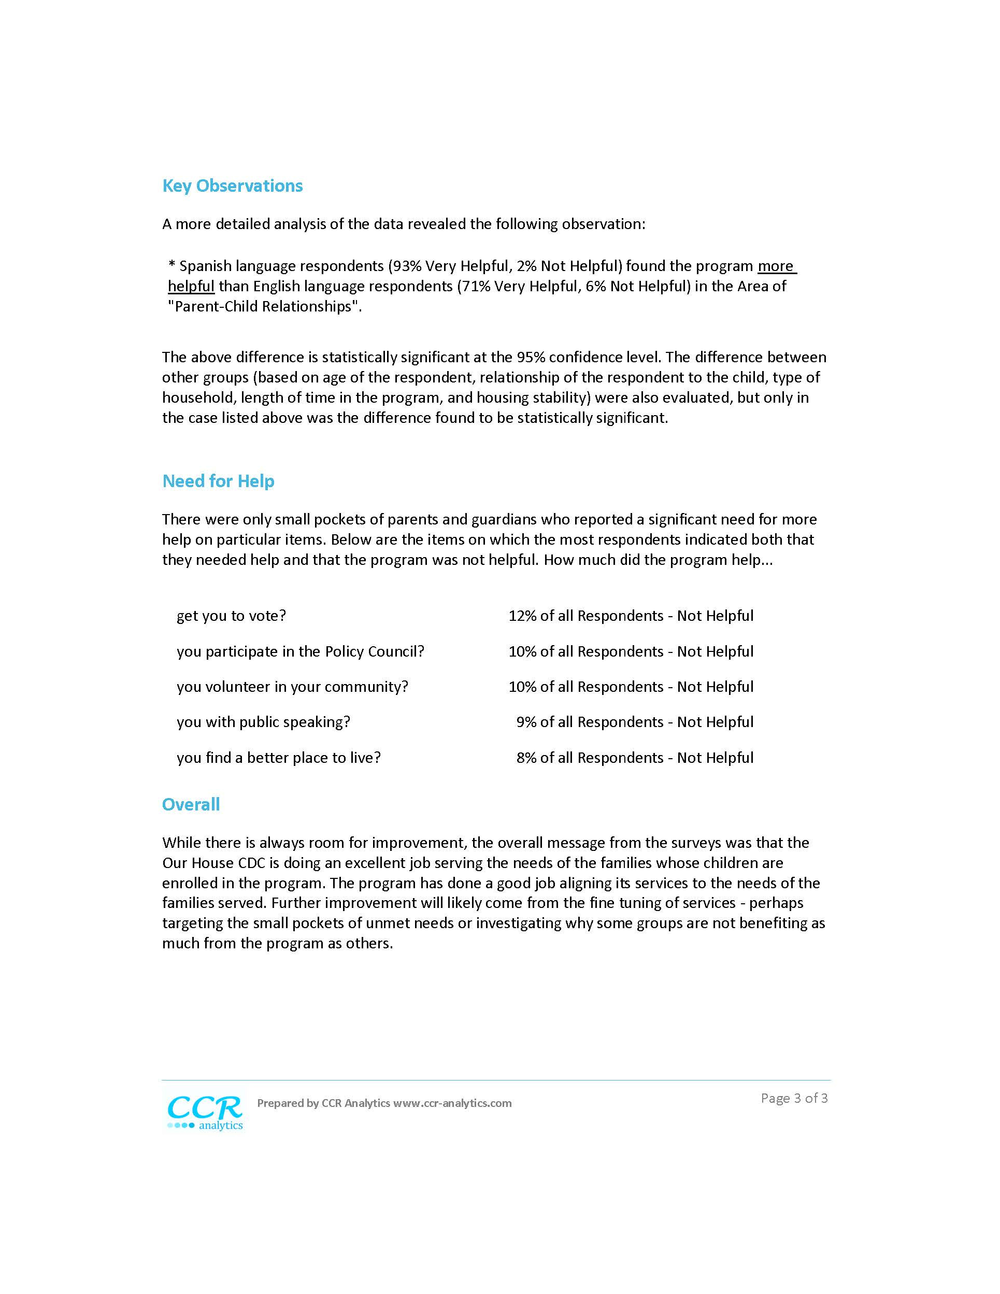 CCR Introduction website_Page_25.png